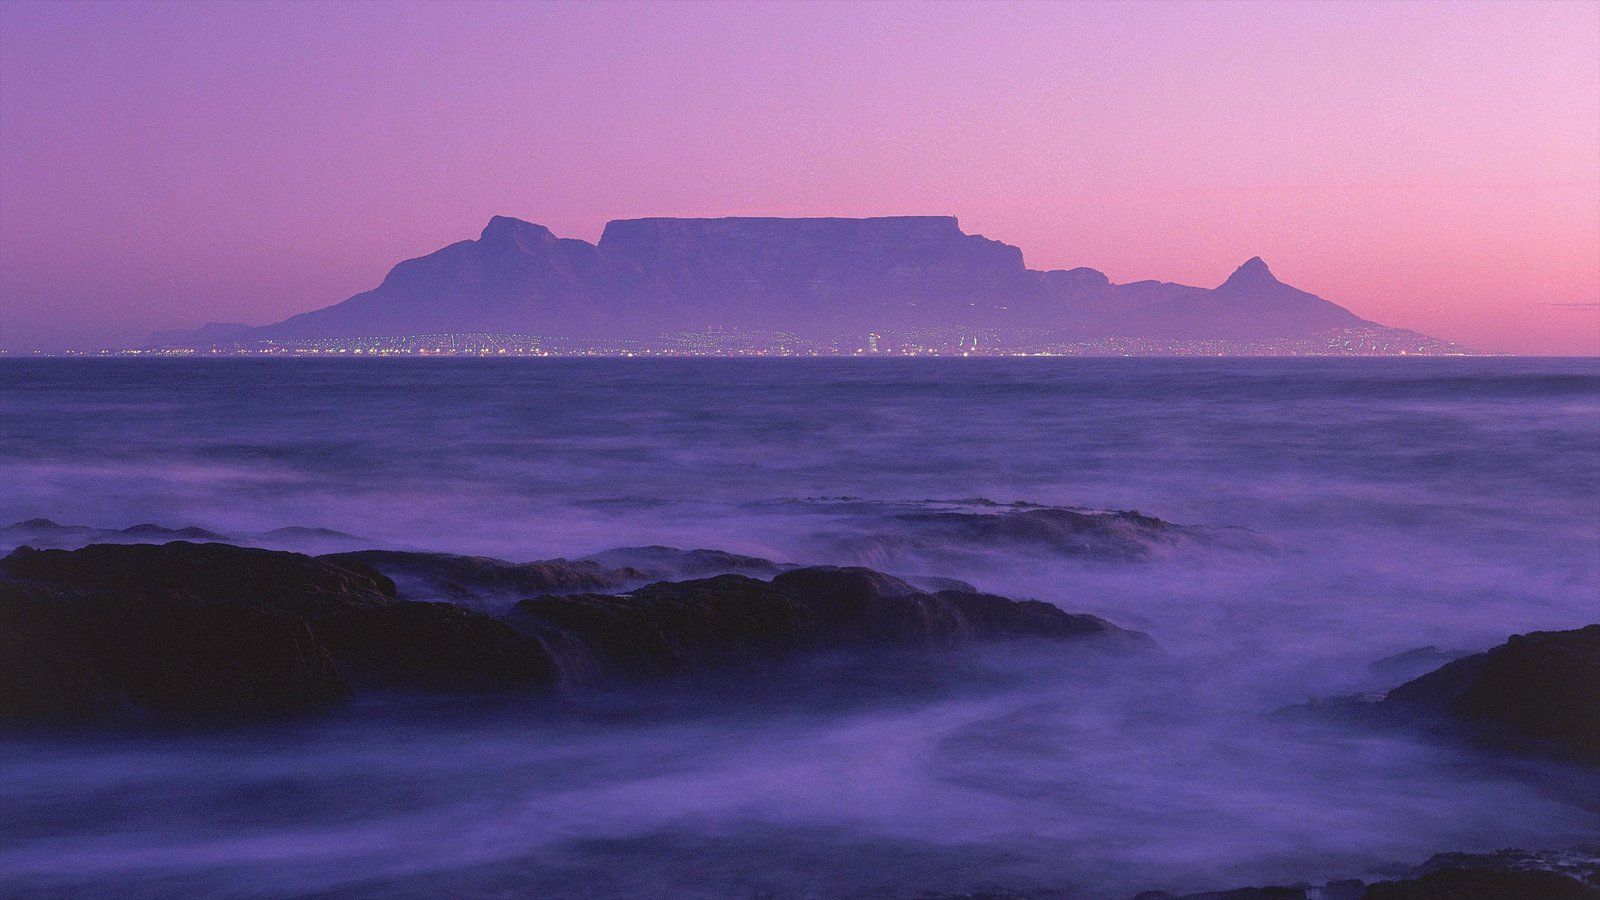 Cape Town showing mountains, a sunset and rocky coastline